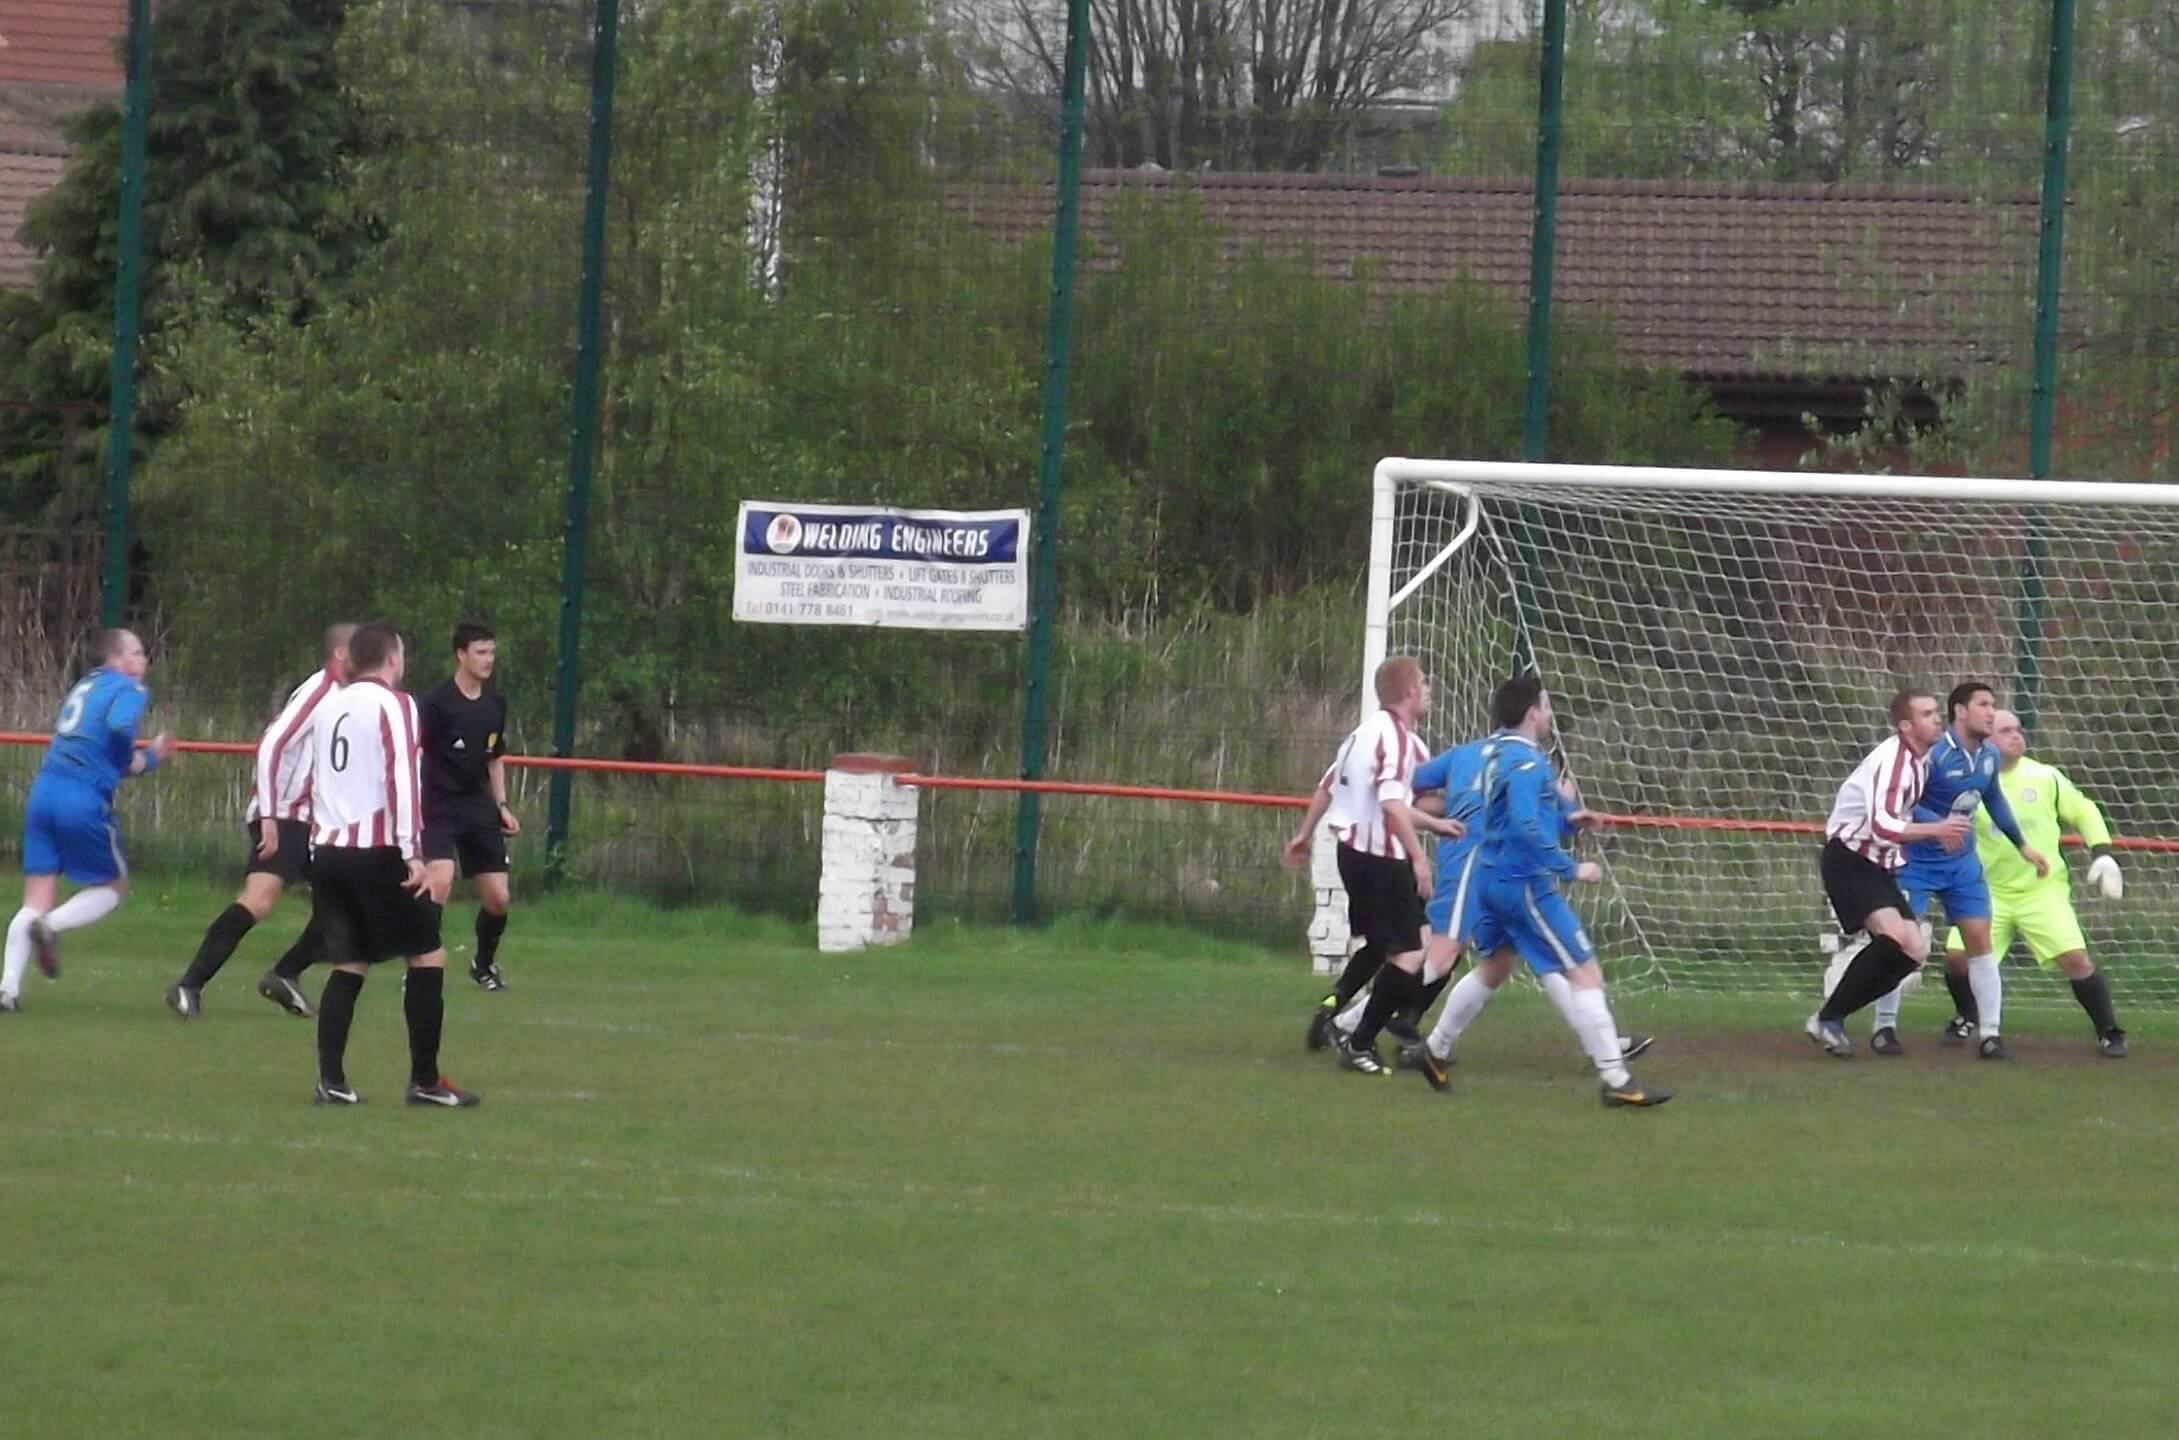 Lovering nicks in at the back post to equalise